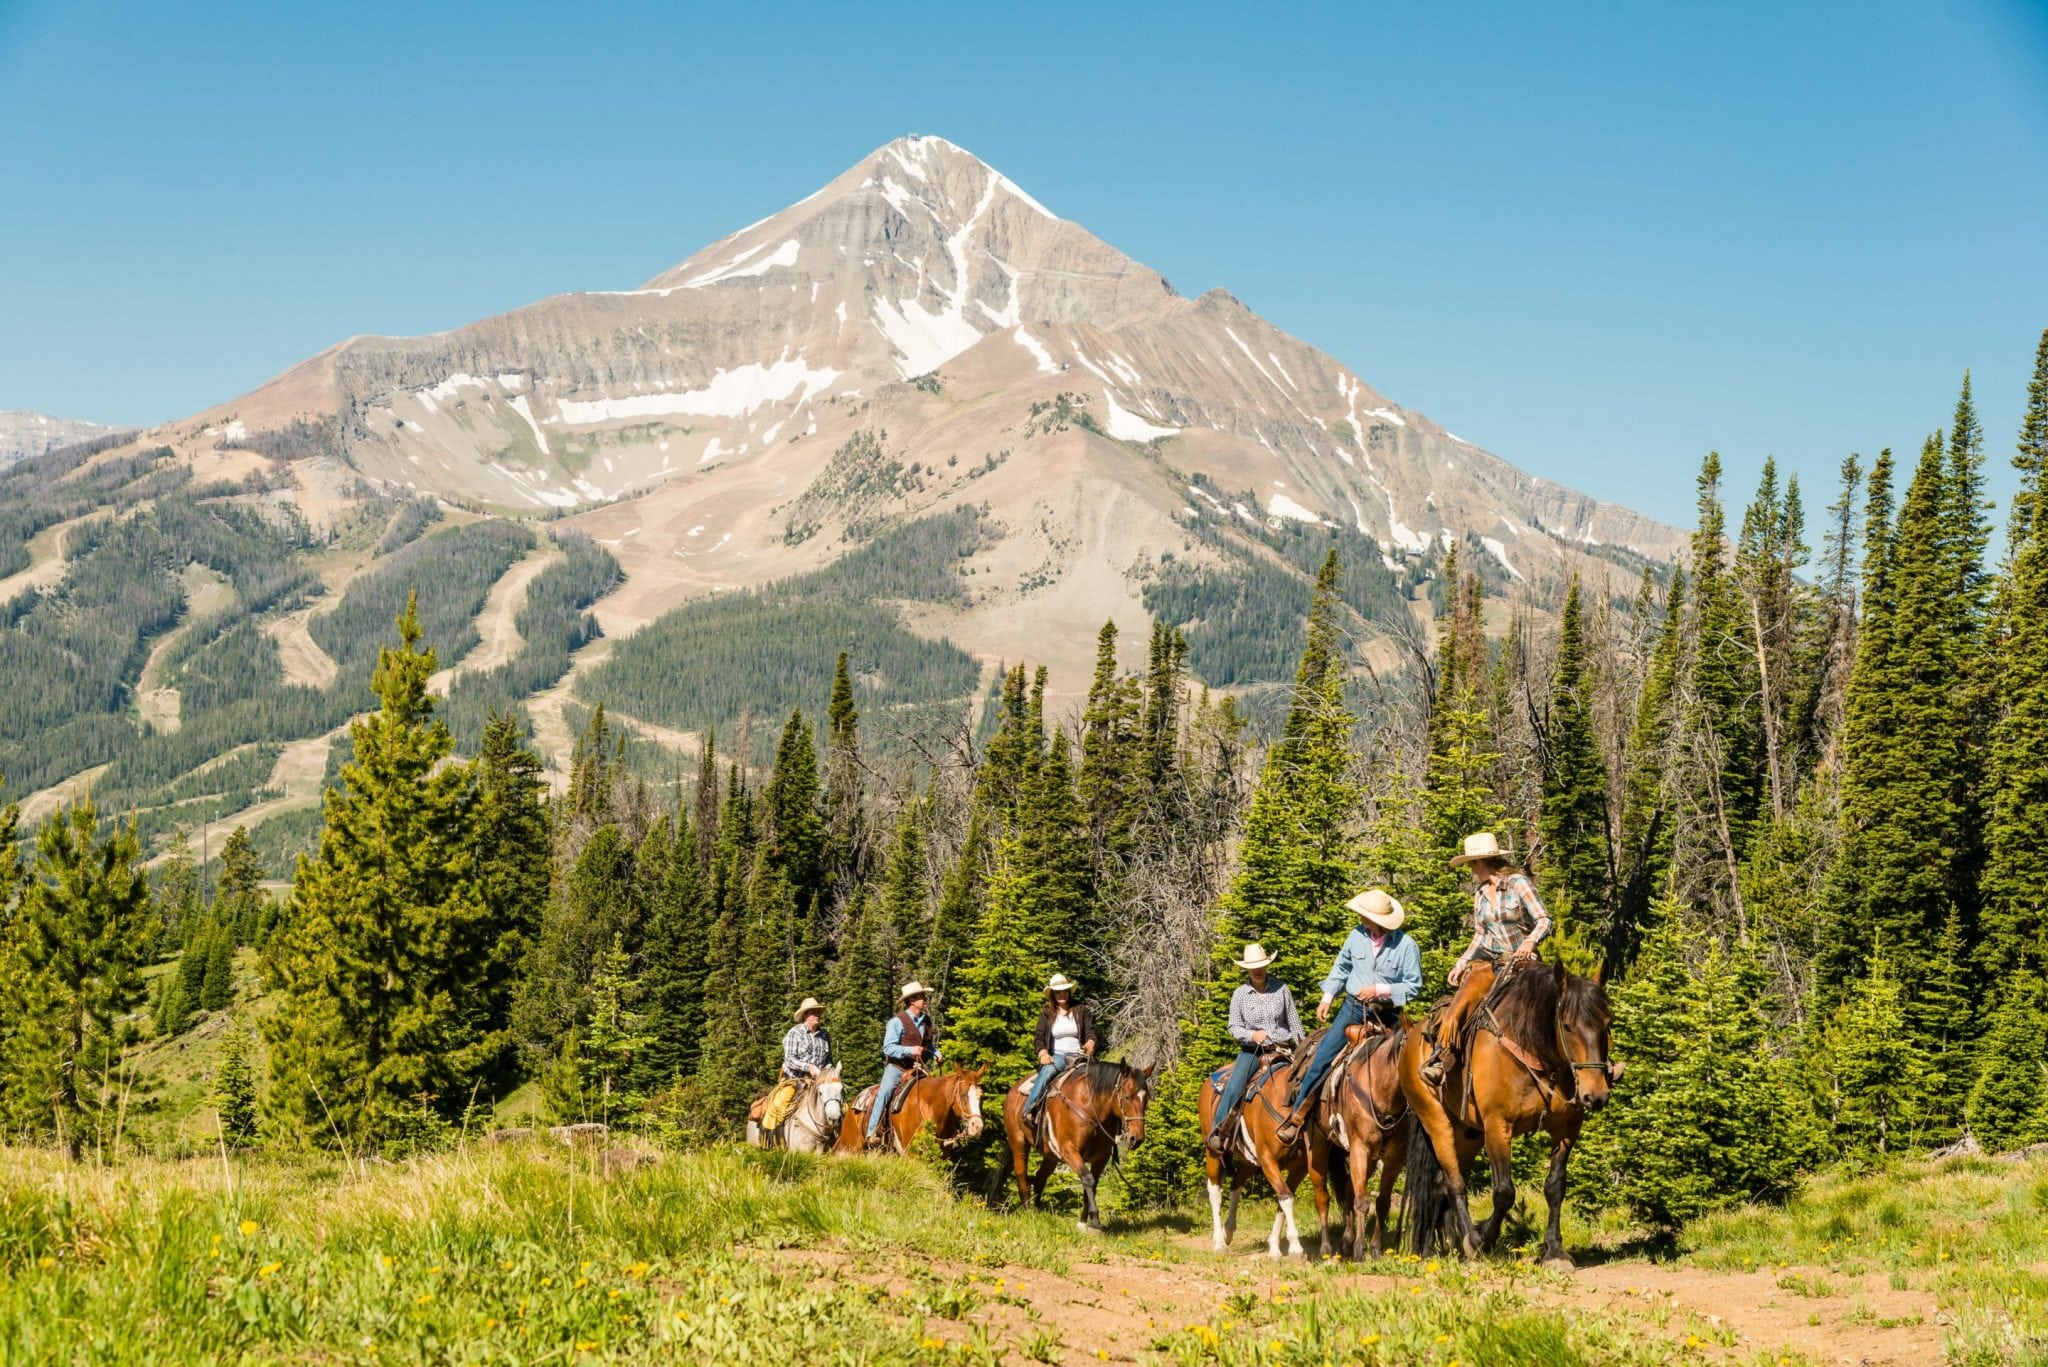 Horseback ride in Big Sky - with Lone Peak in the background.